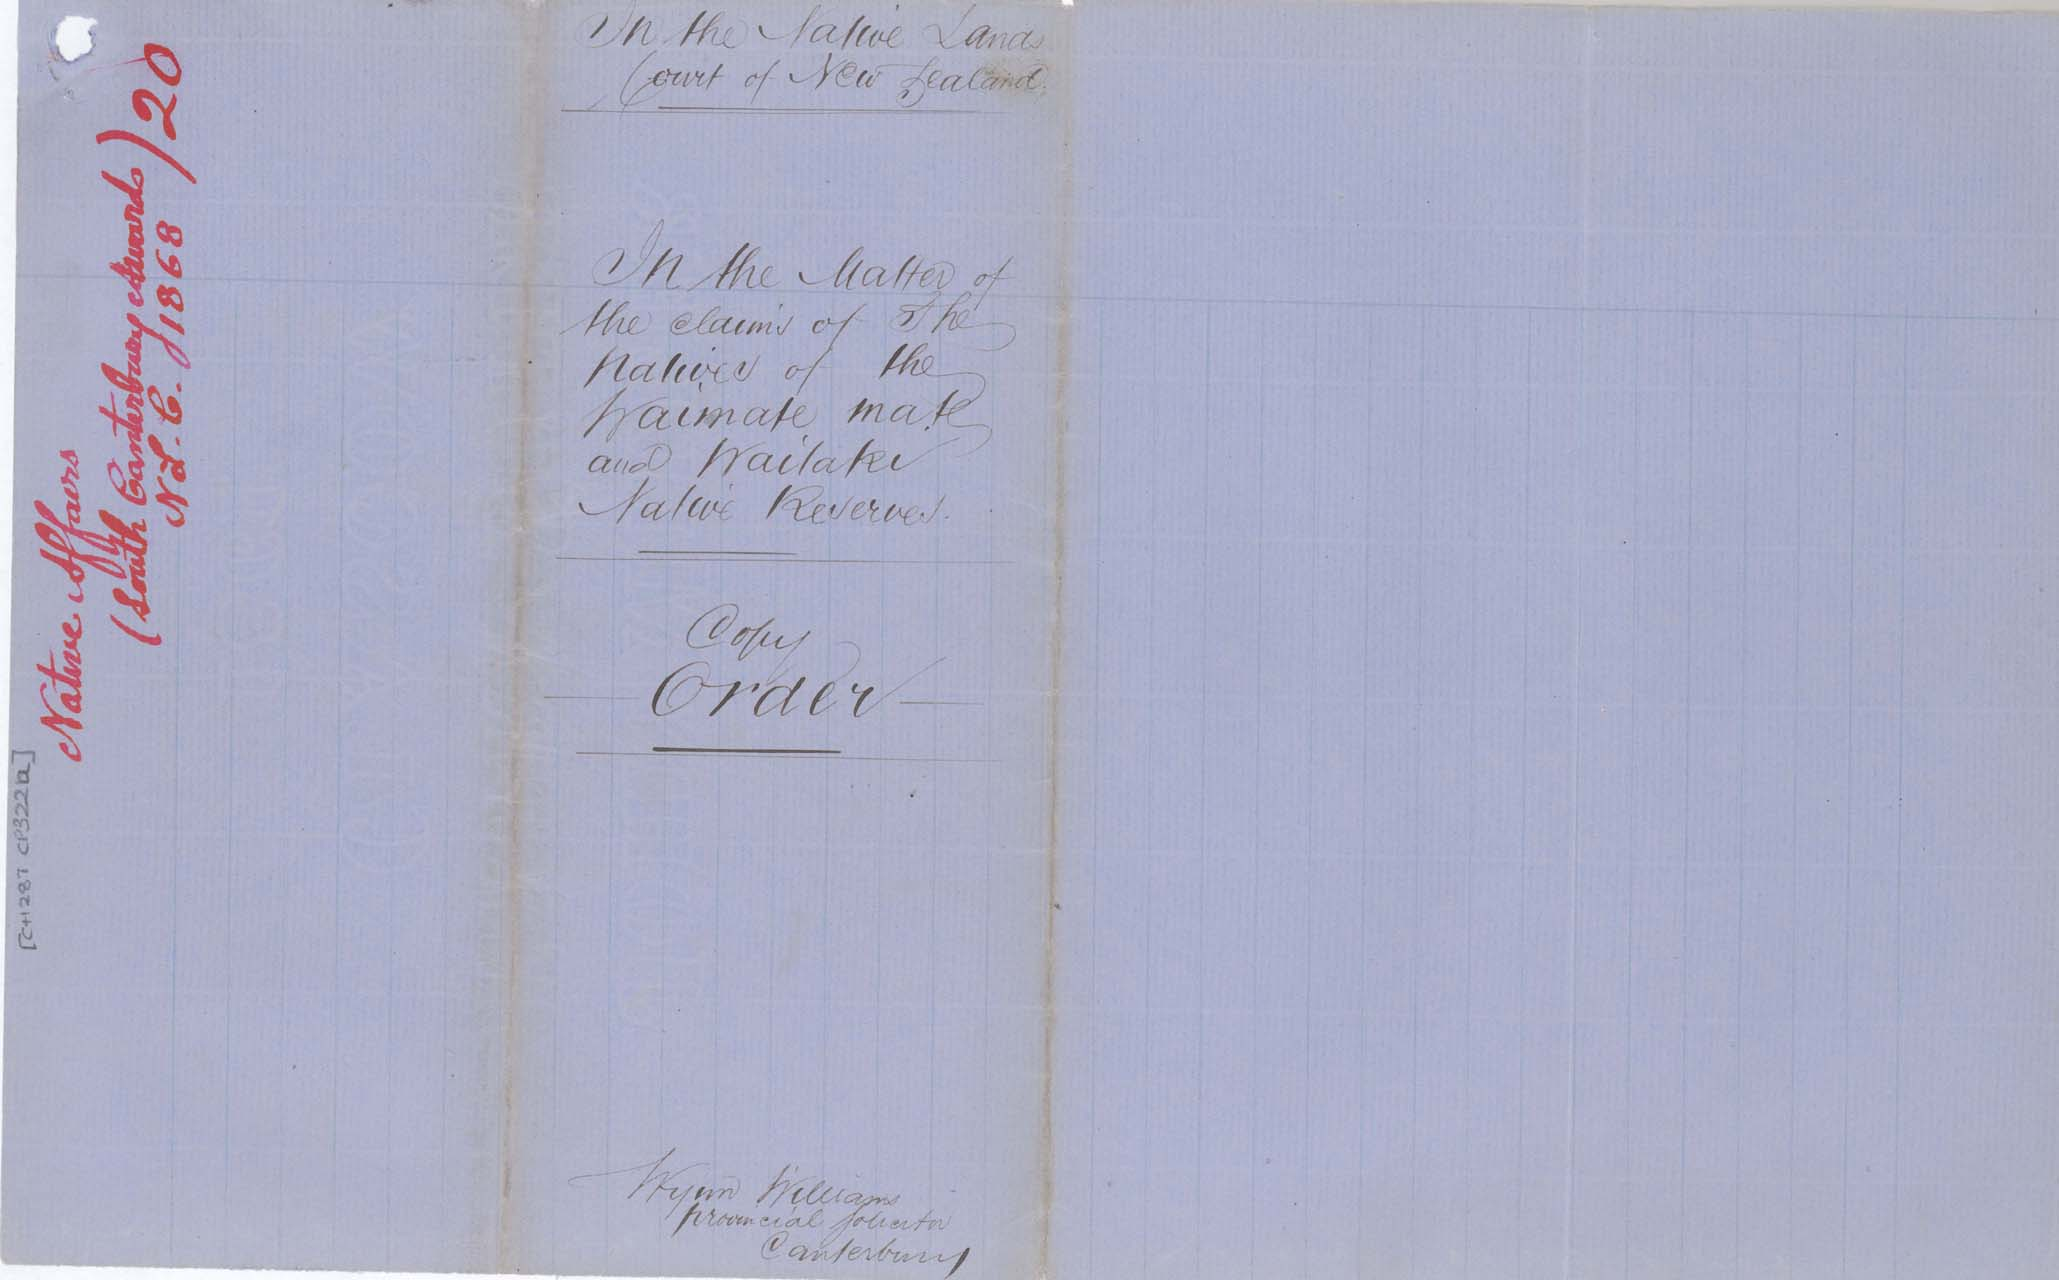 Descriptions - Sth Canterbury Native Land Court Reserves of 1868 - Cover